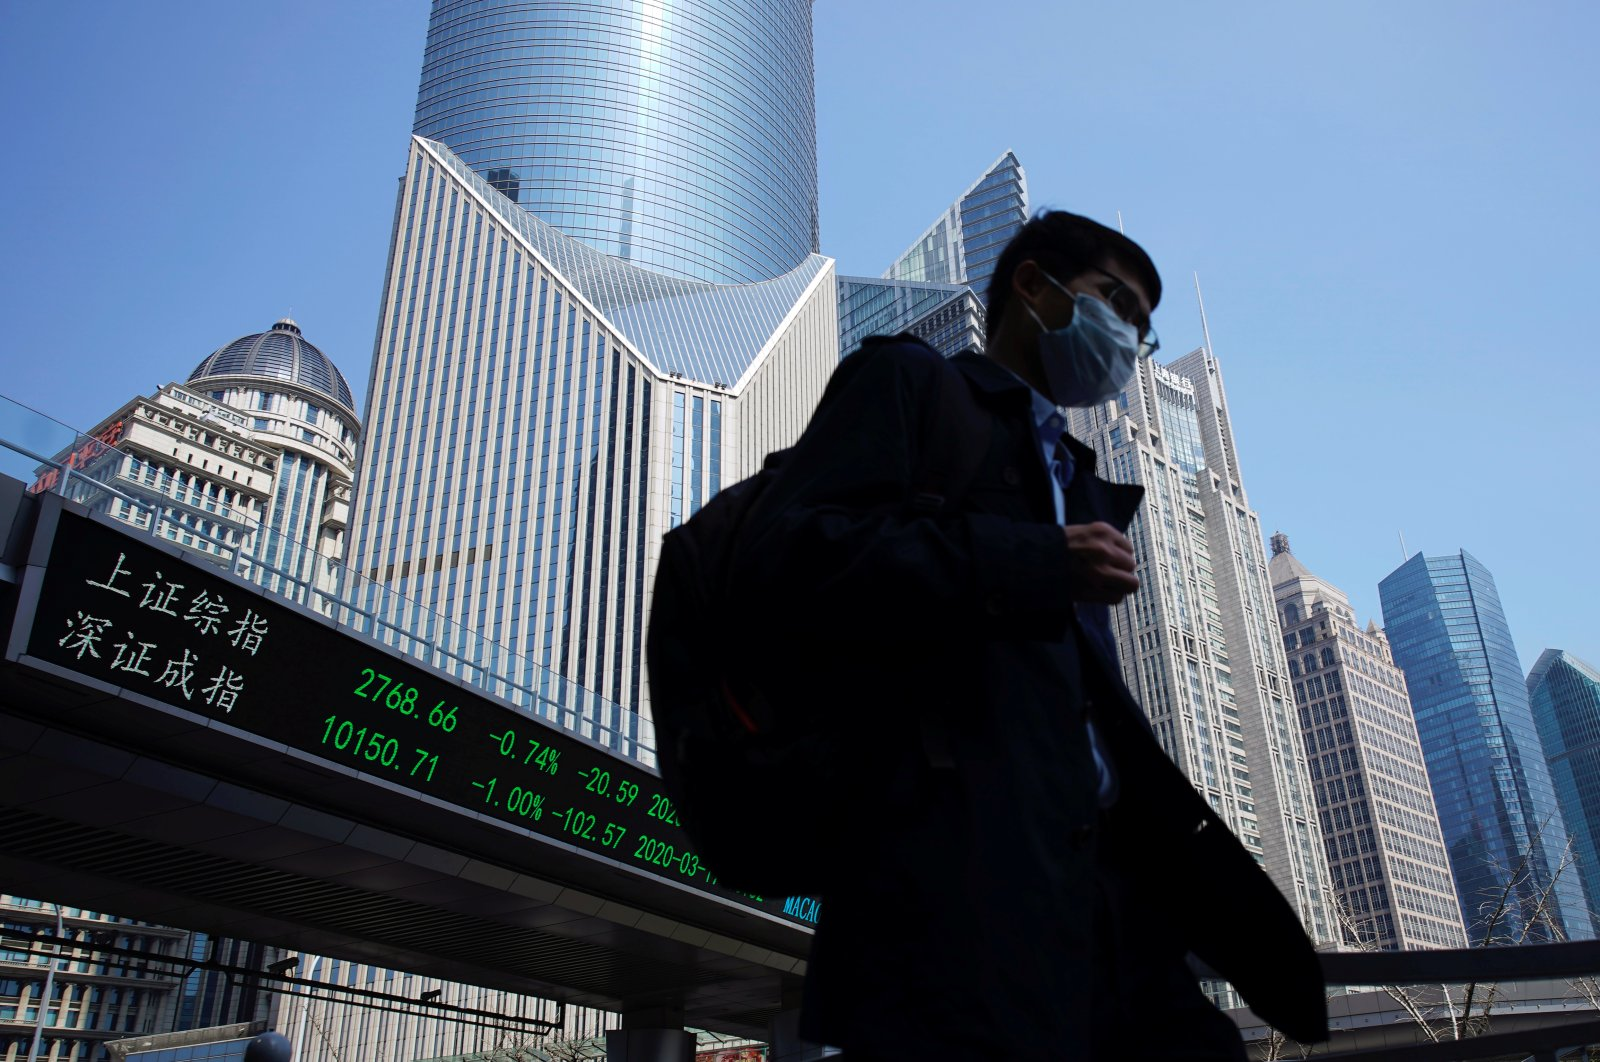 A pedestrian wearing a face mask walks near an overpass with an electronic board showing stock information, following an outbreak of a novel coronavirus in Shanghai, China, March 17, 2020. (Reuters Photo)